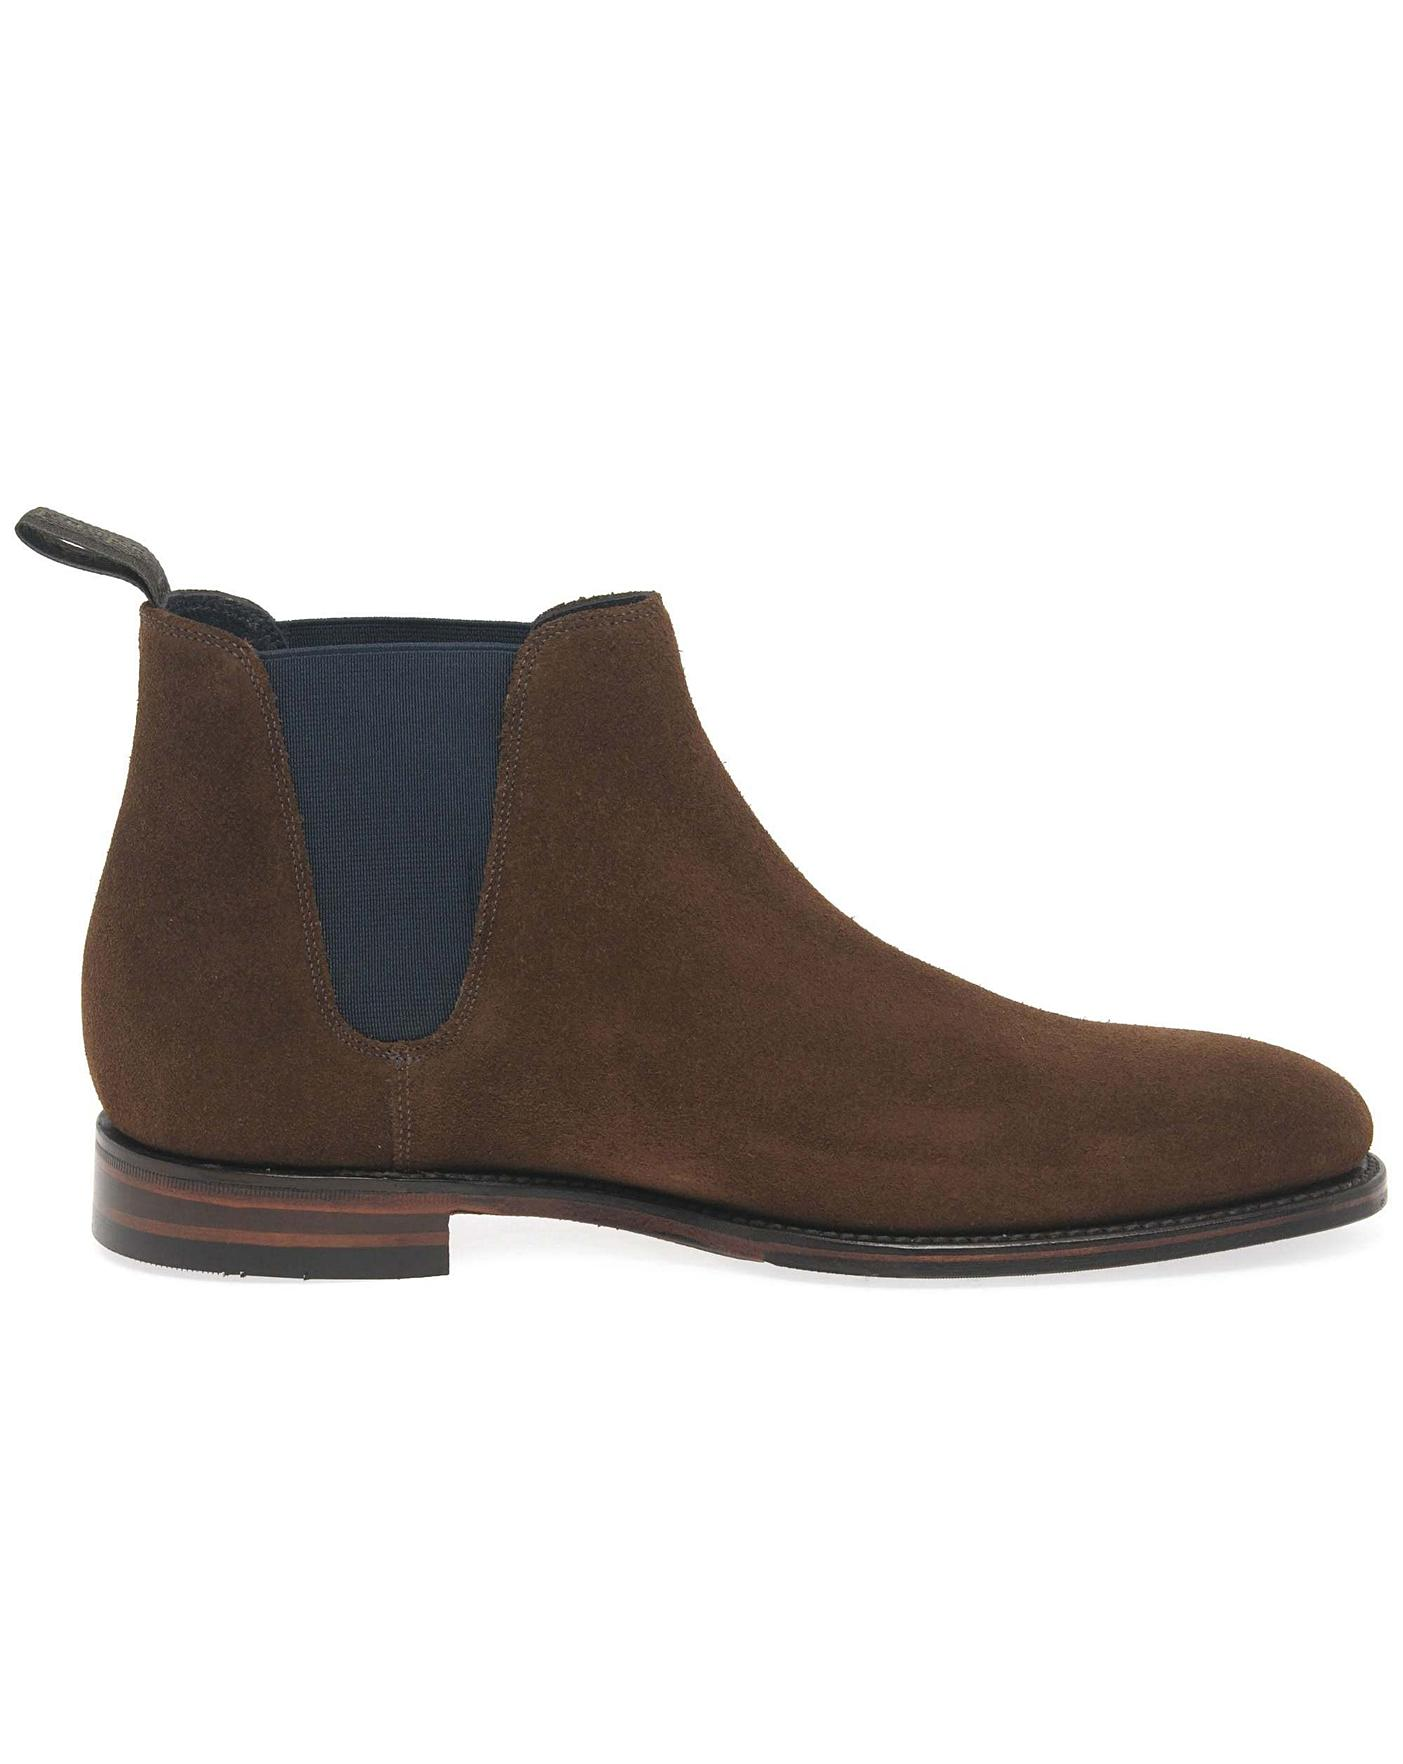 50a16c509c4 Loake Caine Mens Suede Chelsea Boots